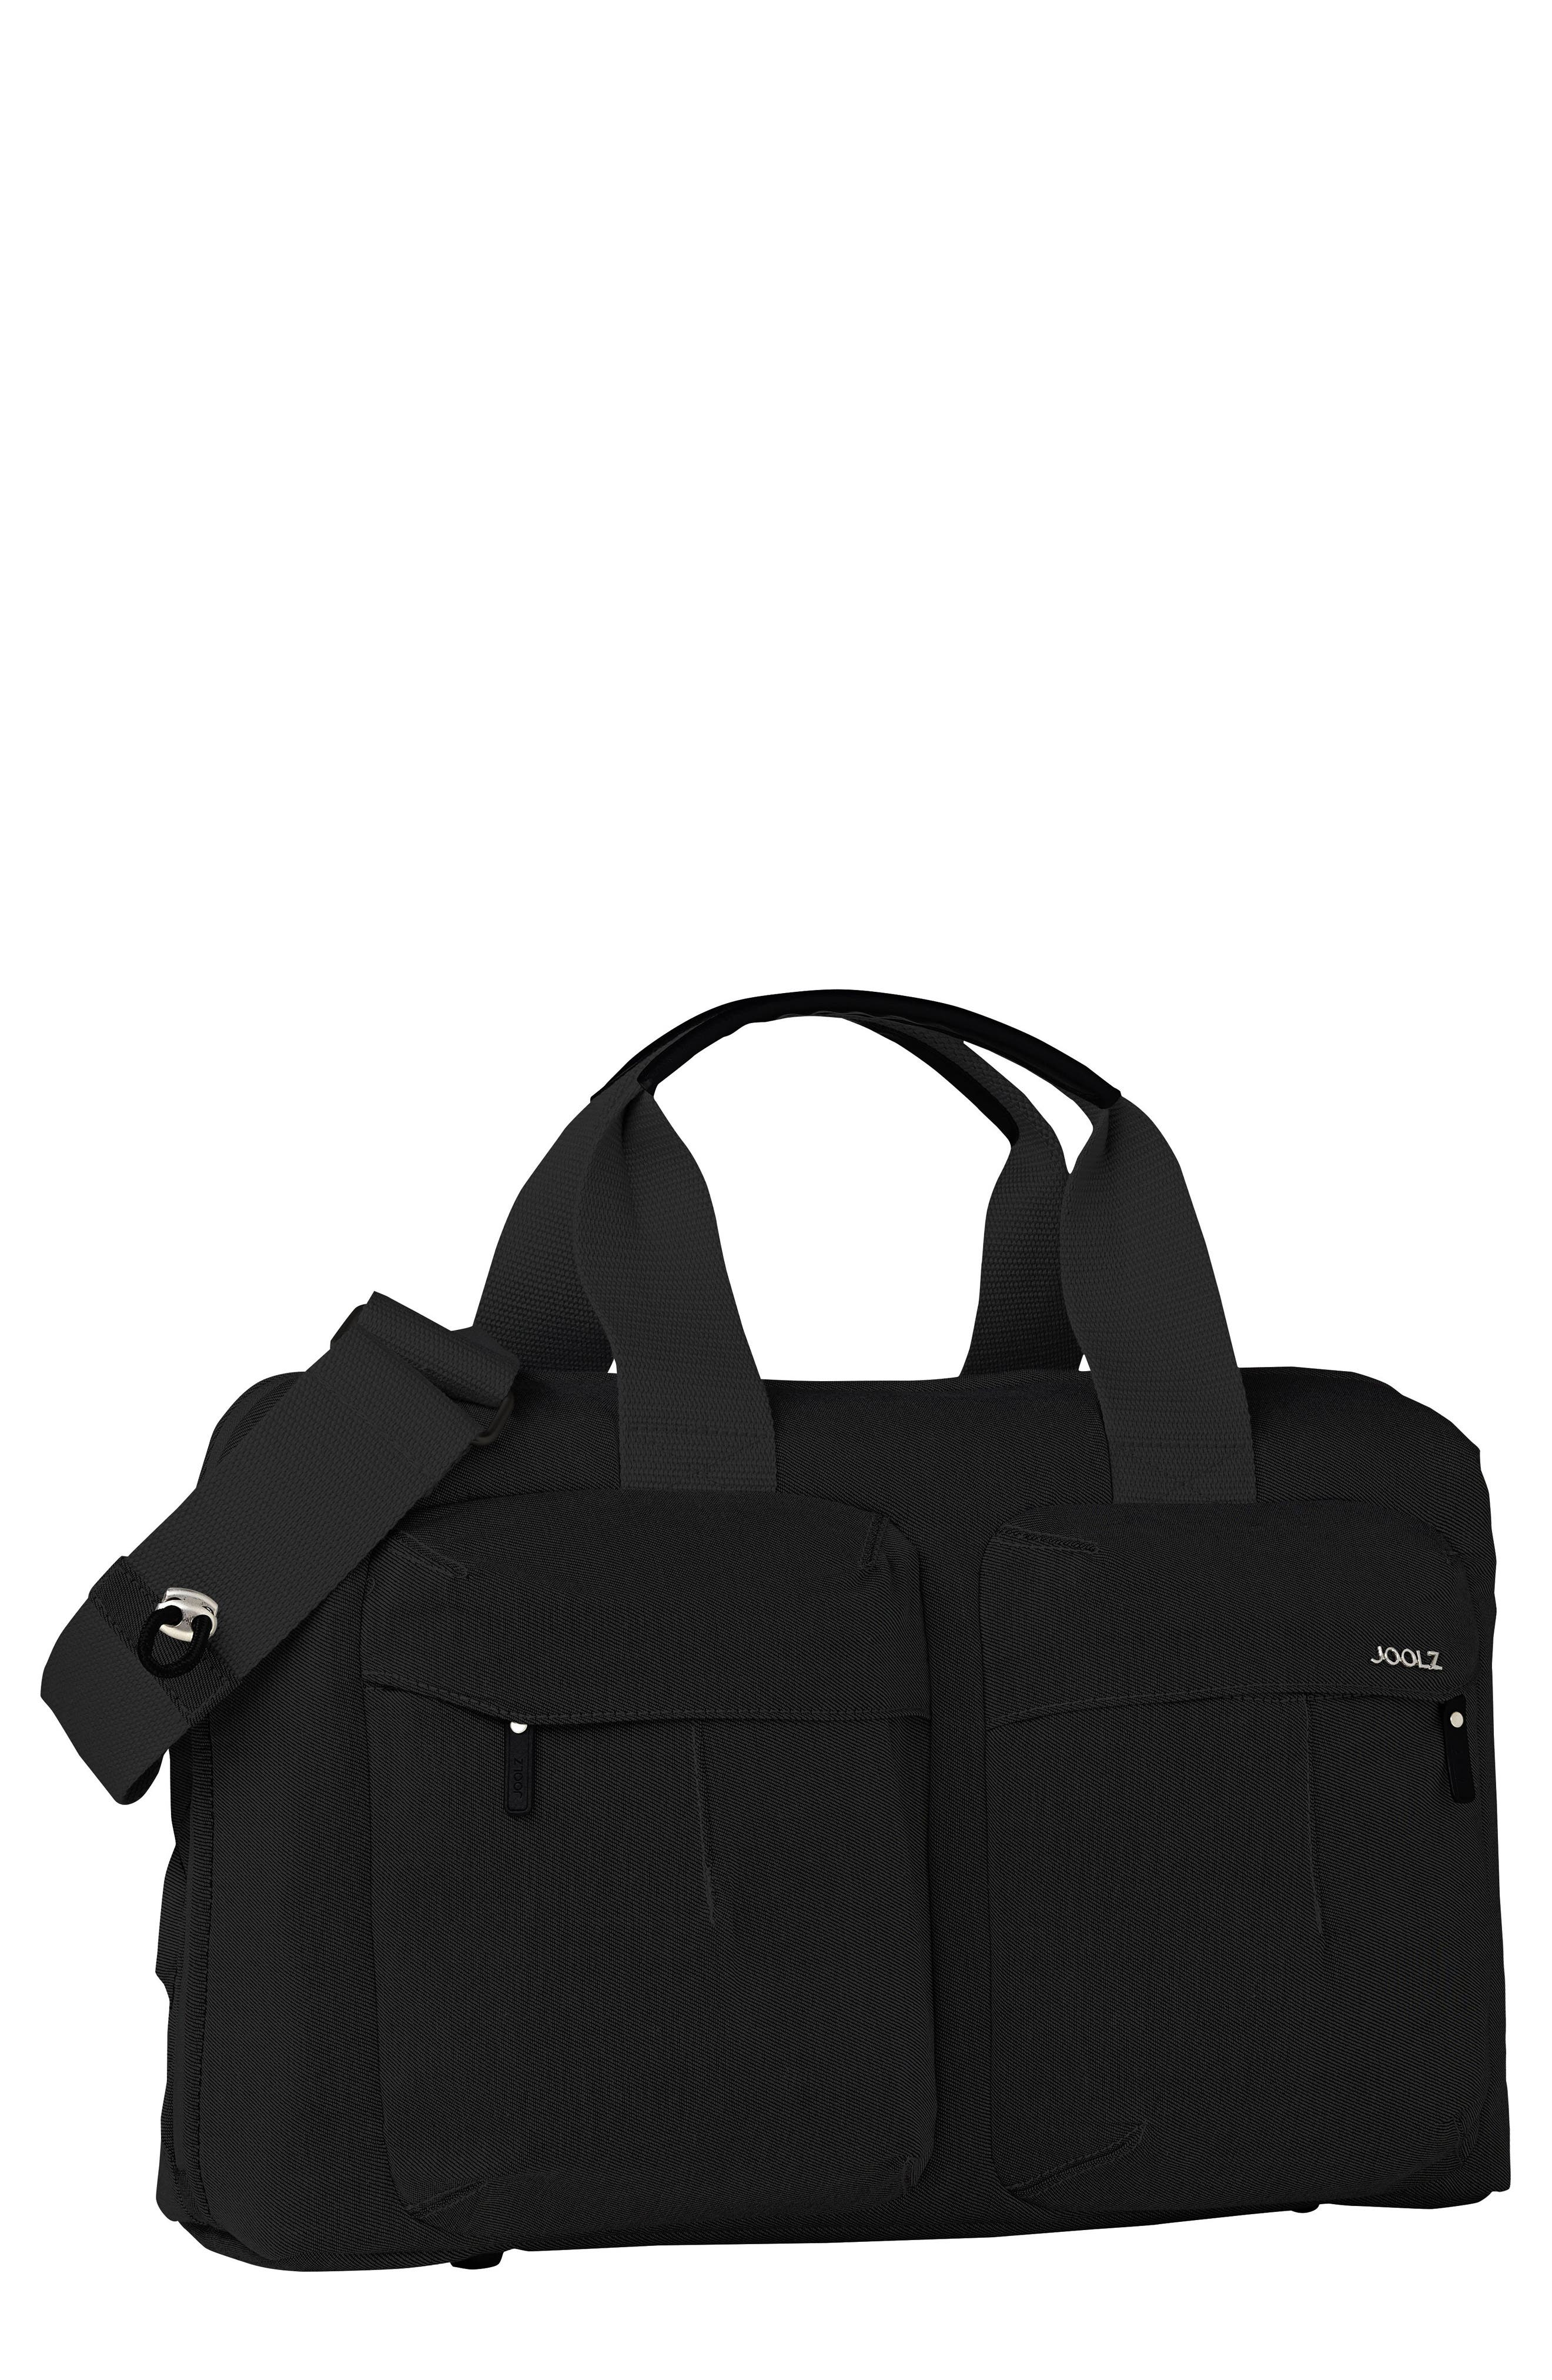 Studio Diaper Bag,                         Main,                         color, Noir